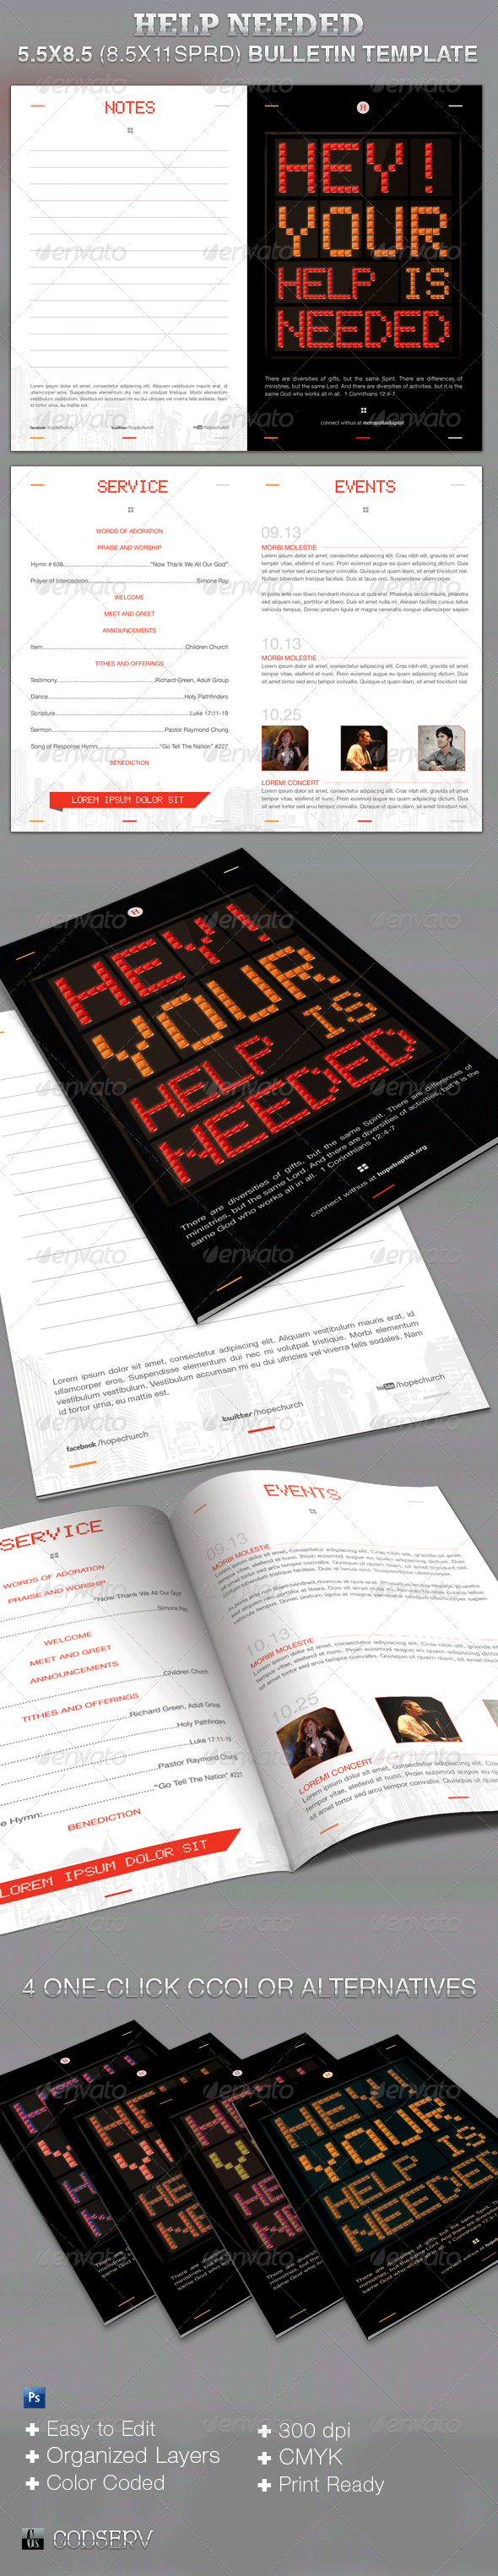 GraphicRiver Help Needed Church Bulletin Template 3262208